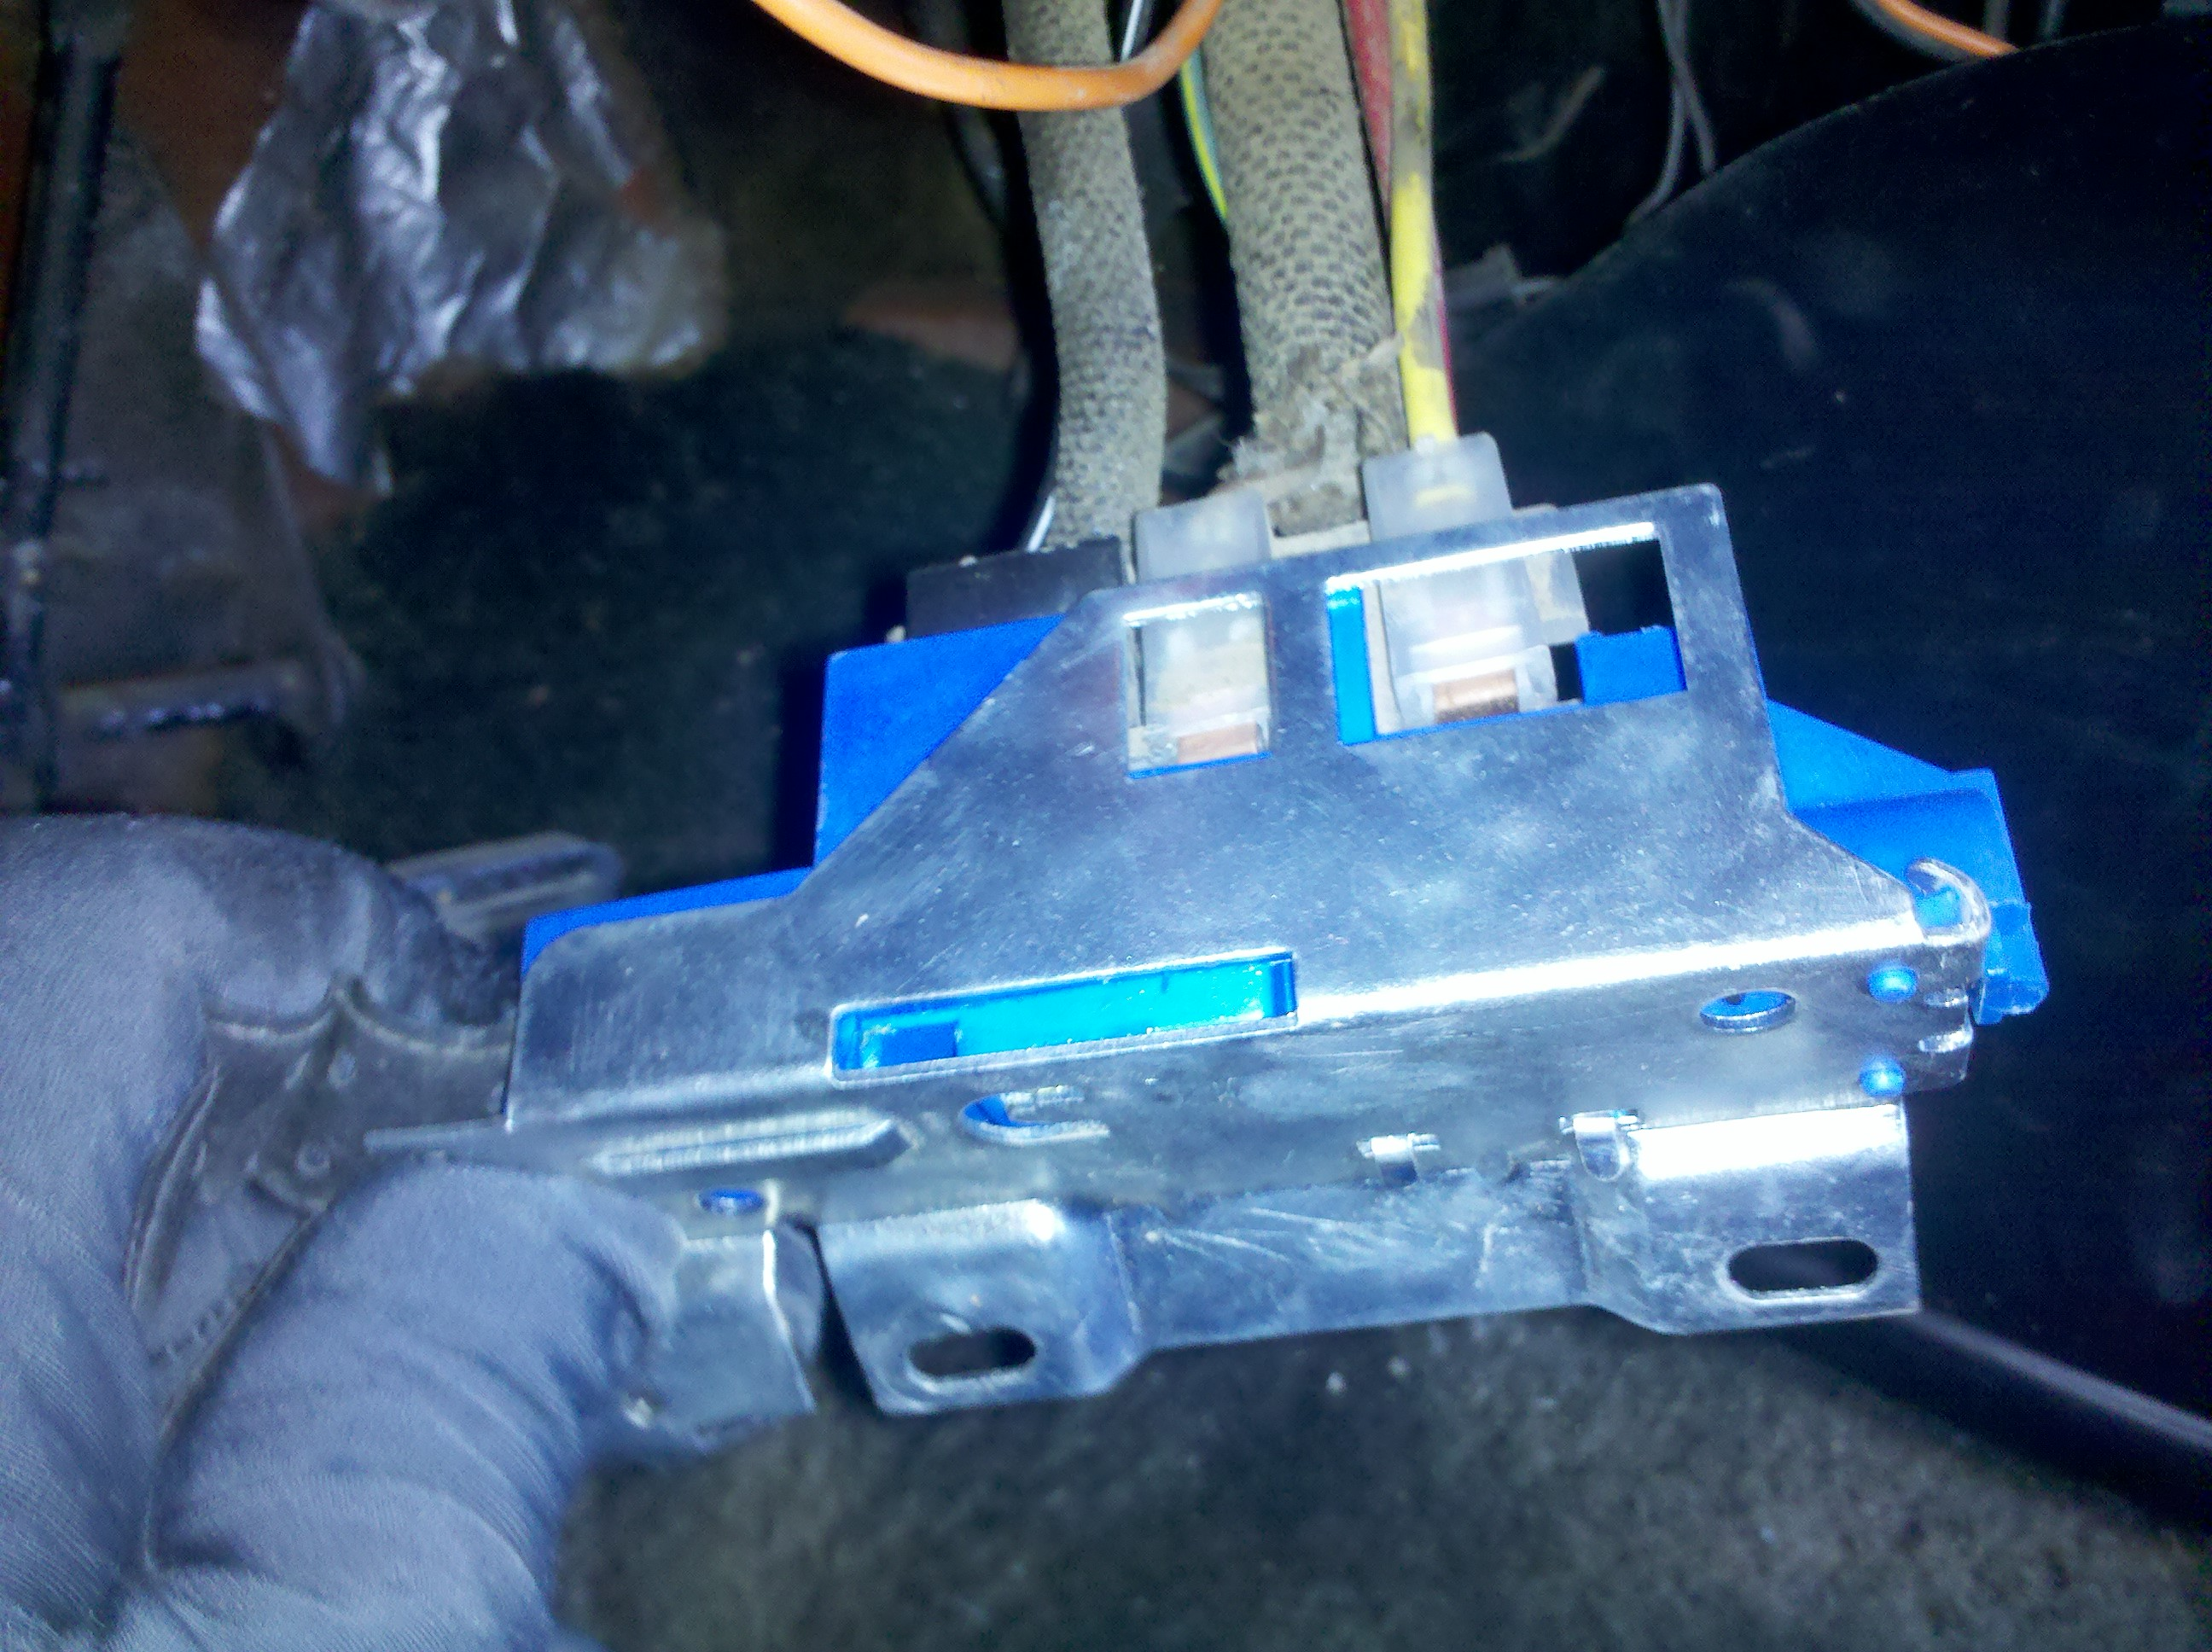 Michaels Amc Javelin Build The Forums Amx Wiring Diagram Still Had A No Start Situation With So I Grabbed New Ignition Switch And Installed It This Is Common 70s Gm Unit As Switched To